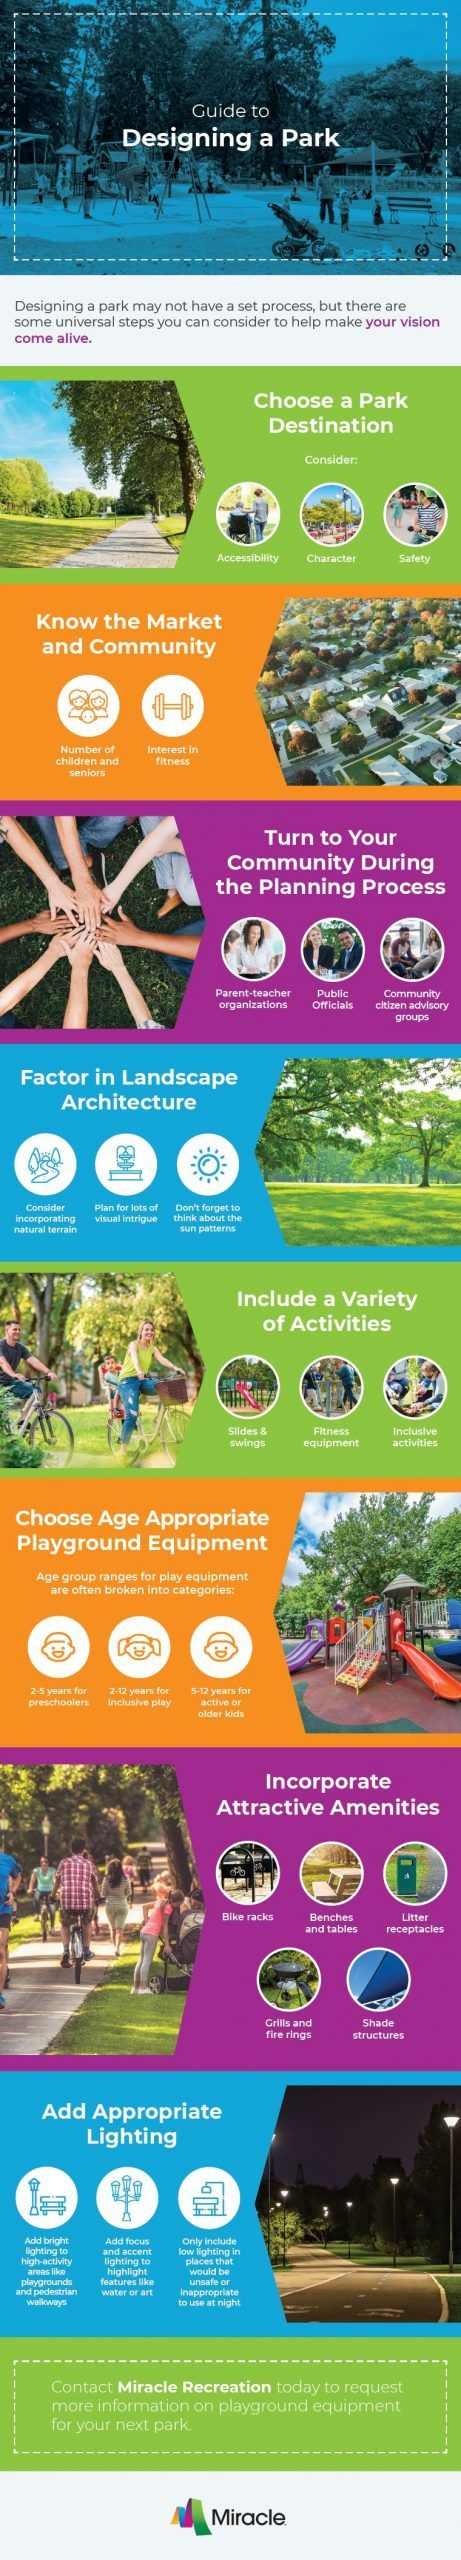 Your Guide To Designing A Park